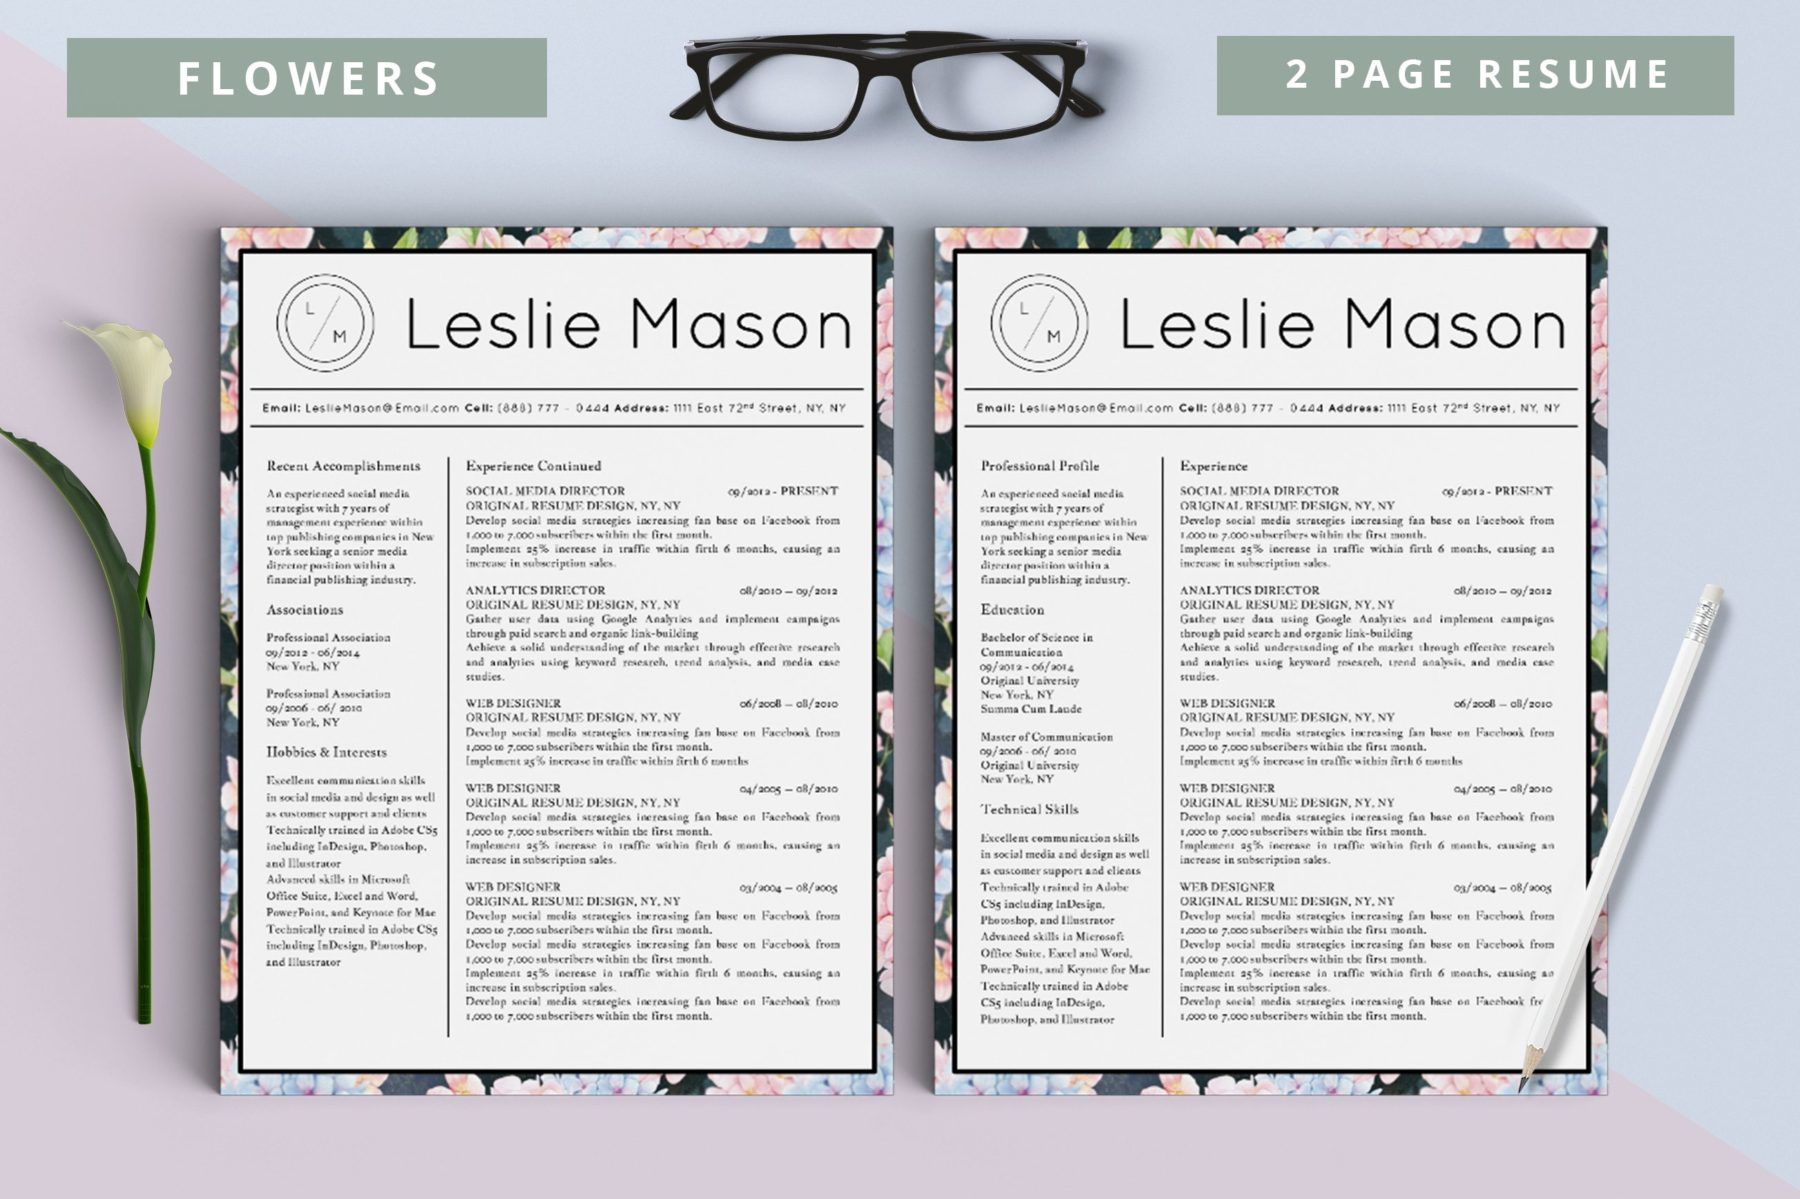 Leslie Mason Flowers 2 Page Cover New